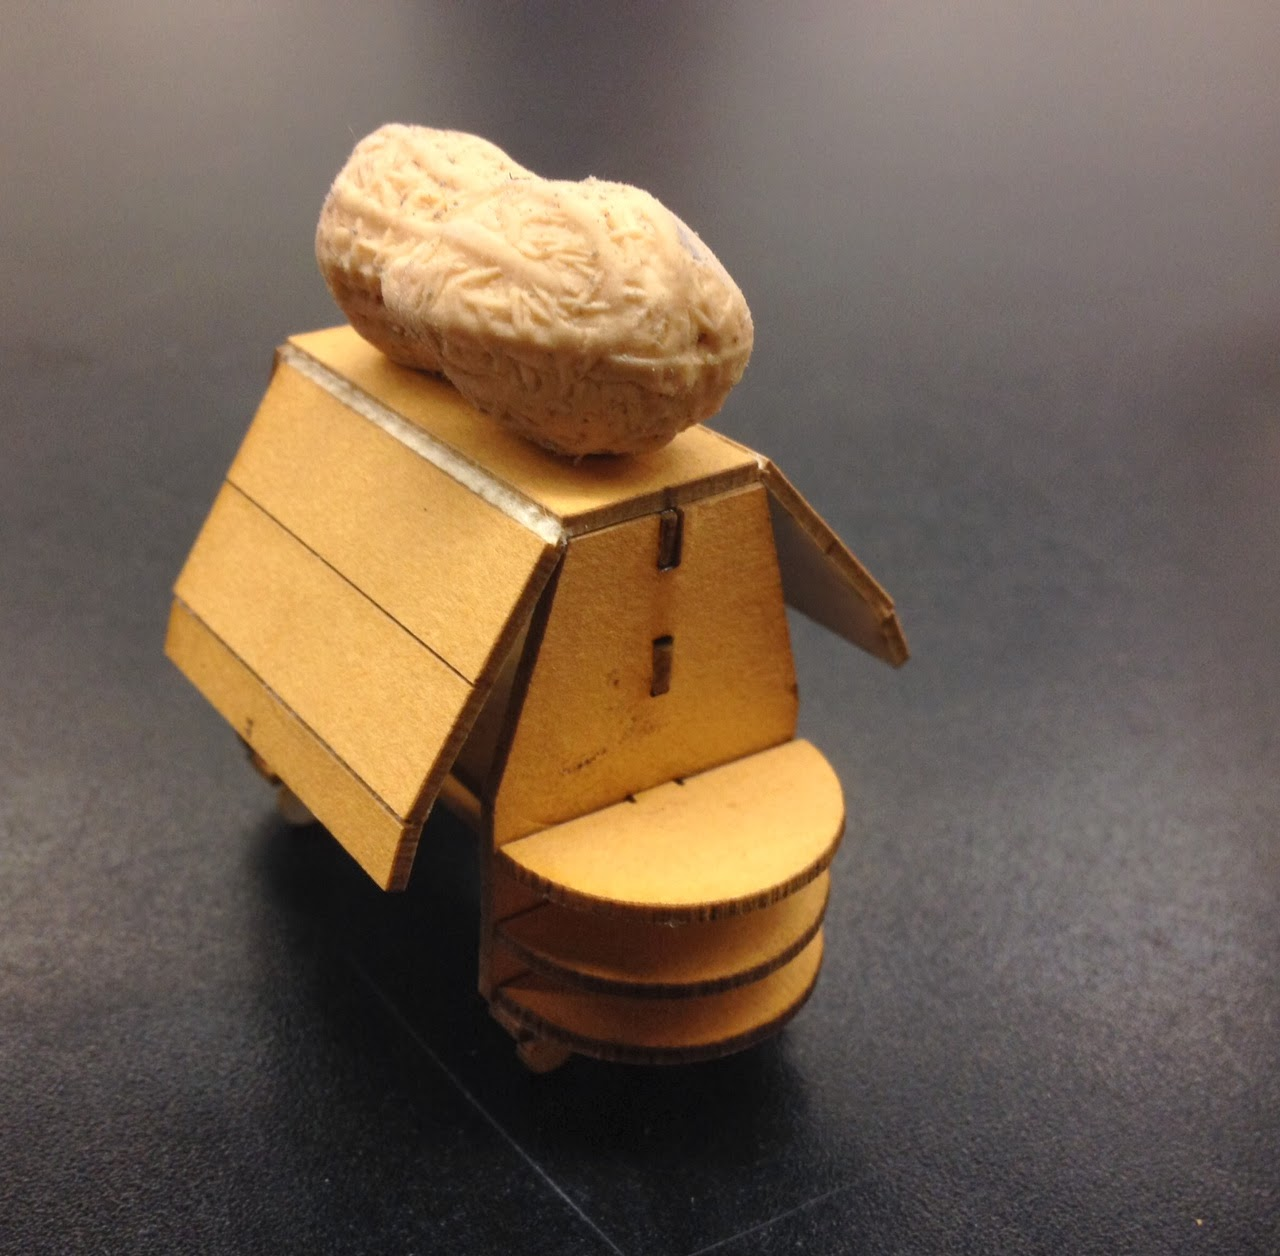 A wooden laser cut miniature kiosk model is assembled and has a peanut eraser on top for size reference.